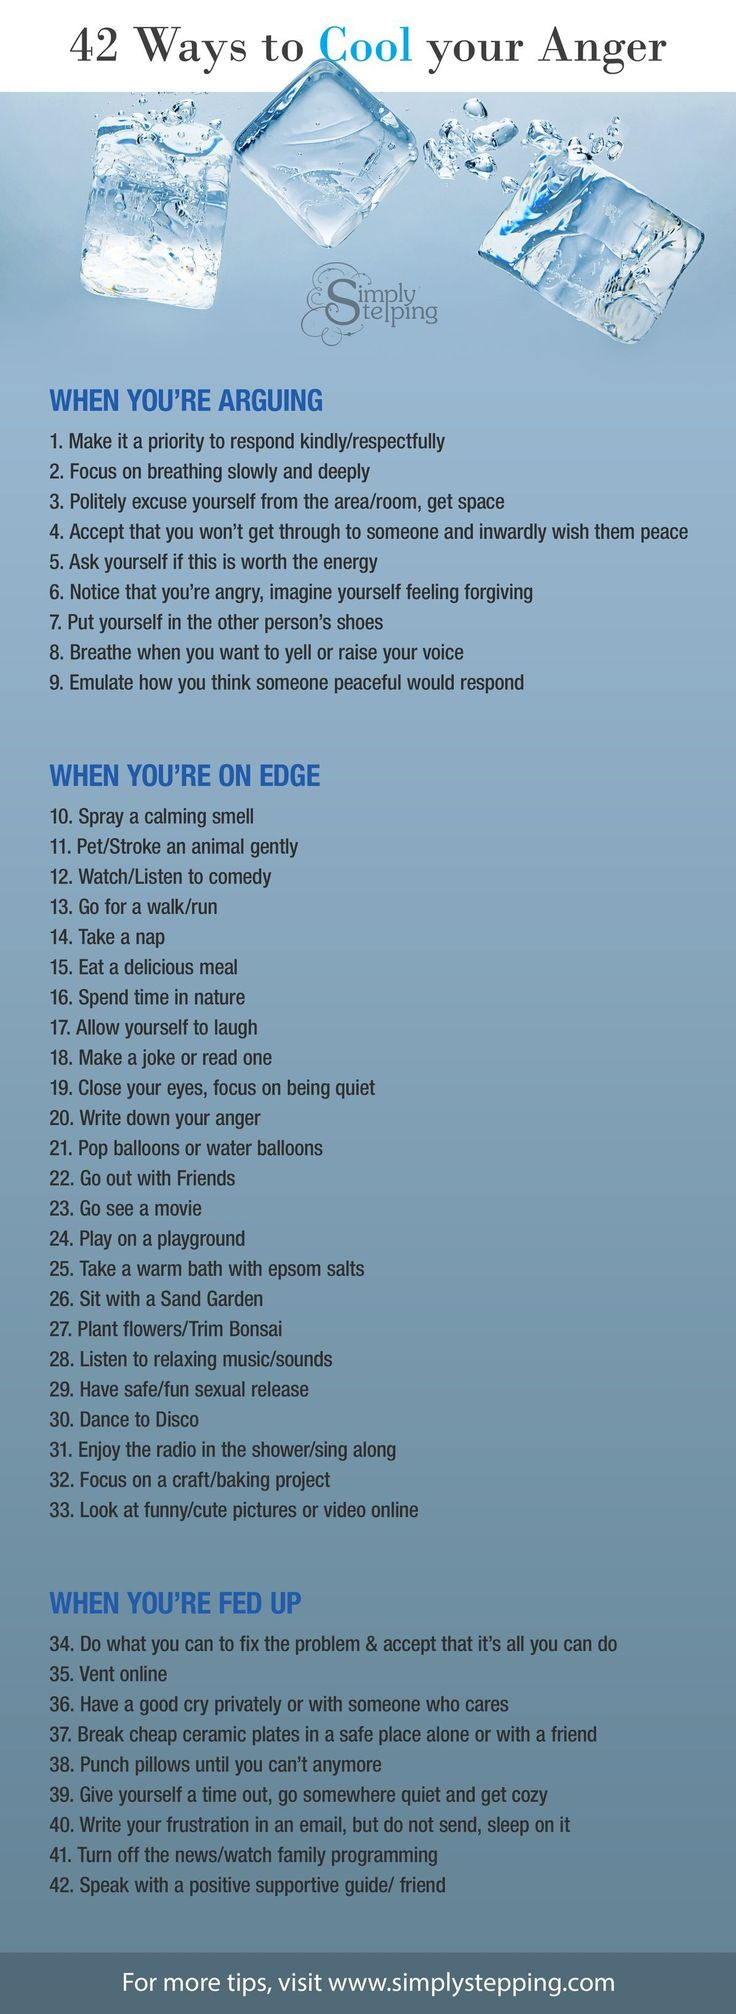 7544 best Cool Ideas images on Pinterest   Families, Health and Life ...